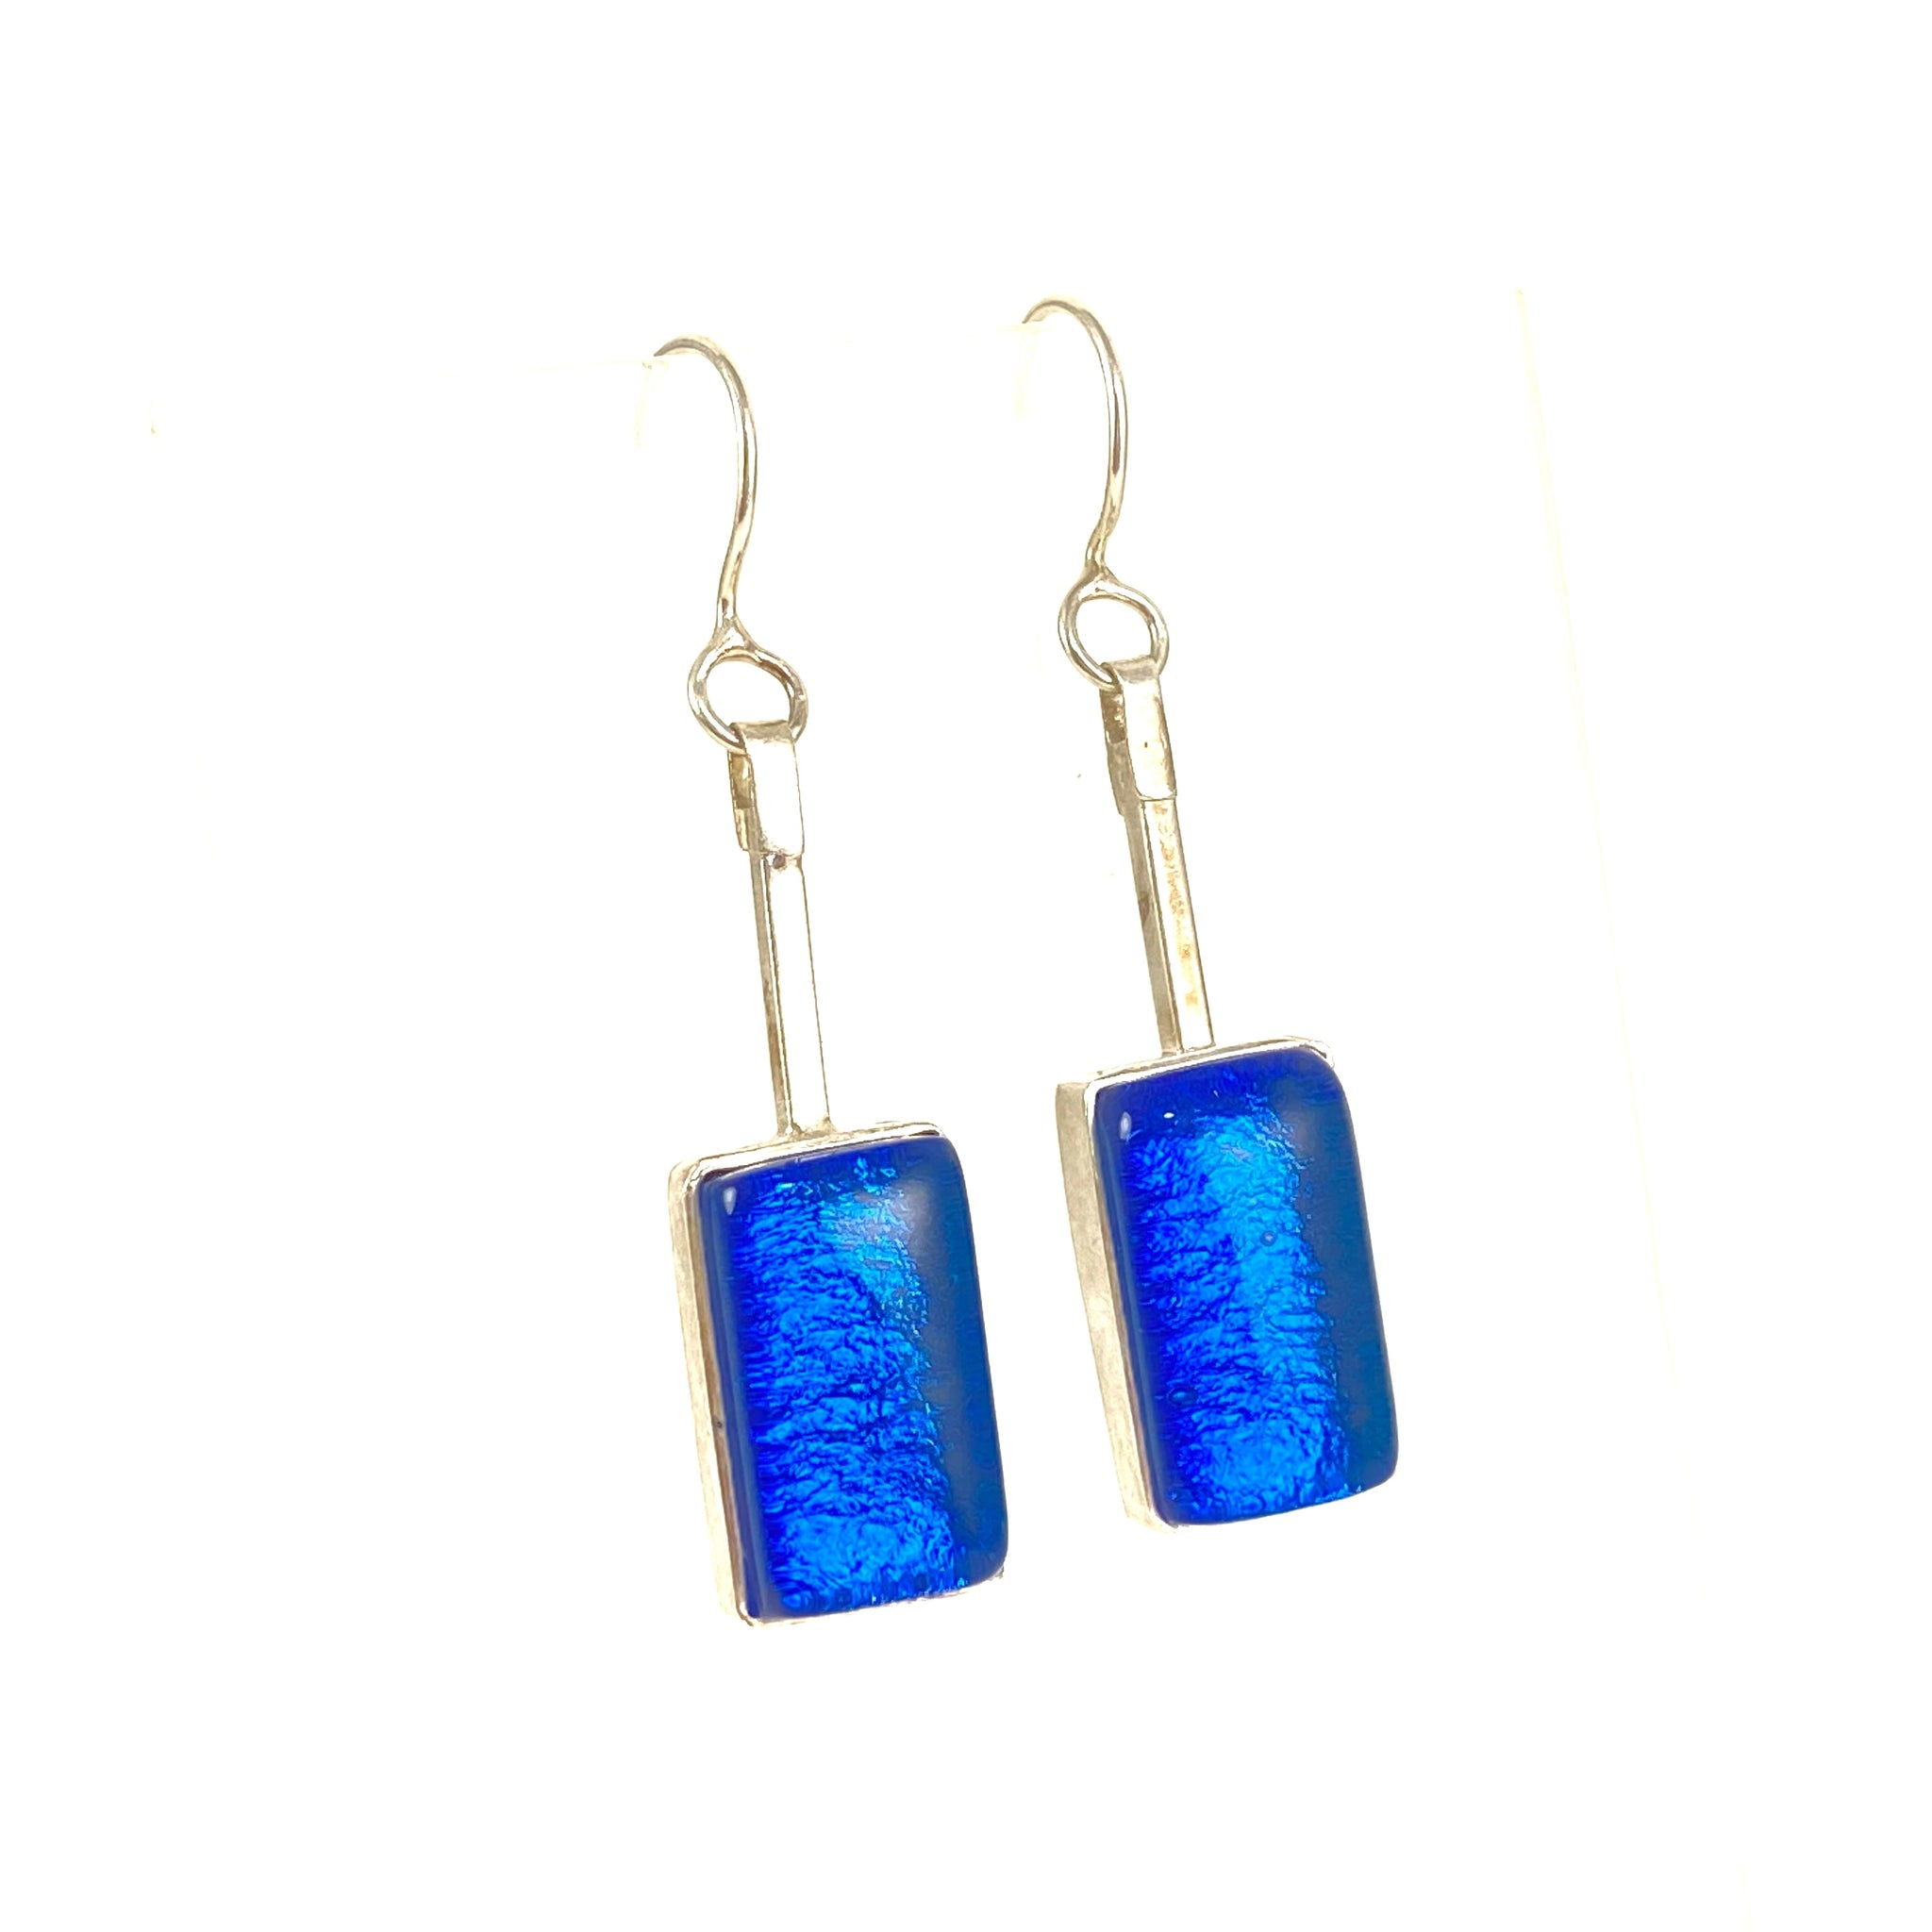 blue, swing earrings, fused glass, glass jewelry, glass and silver jewelry, handmade, handcrafted, American Craft, hand fabricated jewelry, hand fabricated jewellery,  Athen, Georgia, colorful jewelry, sparkle, bullseye glass, dichroic glass, art jewelry